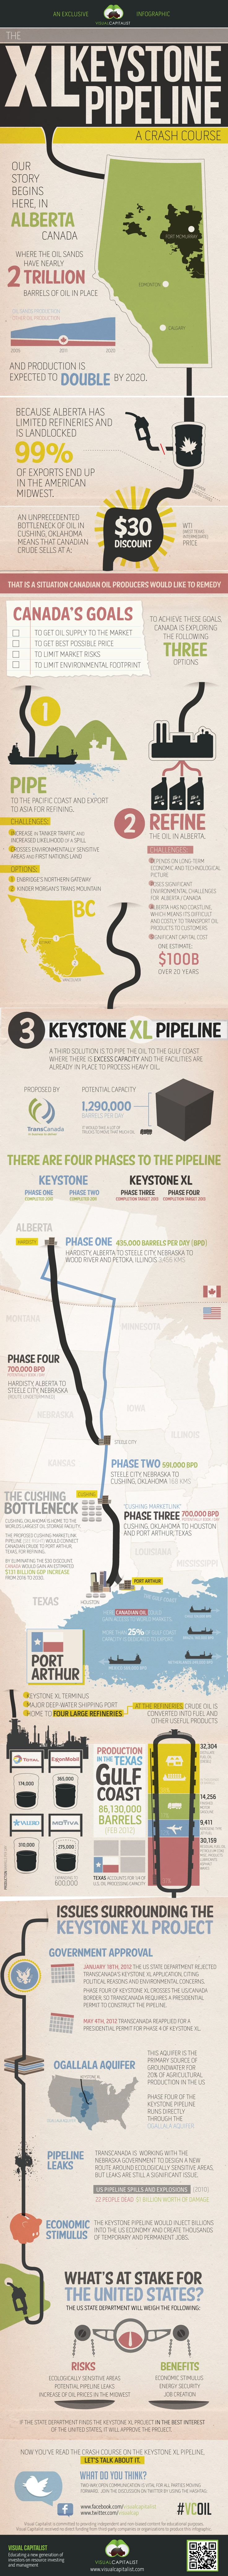 The Keystone XL Pipeline: A Crash Course lists as risks: Increase of oil prices in the Midwest, potential pipeline leaks, ecologically sensitive areas. Also, notice that in 2010, there were leaks costing $1,000,000,000 damage with 22 people dead.